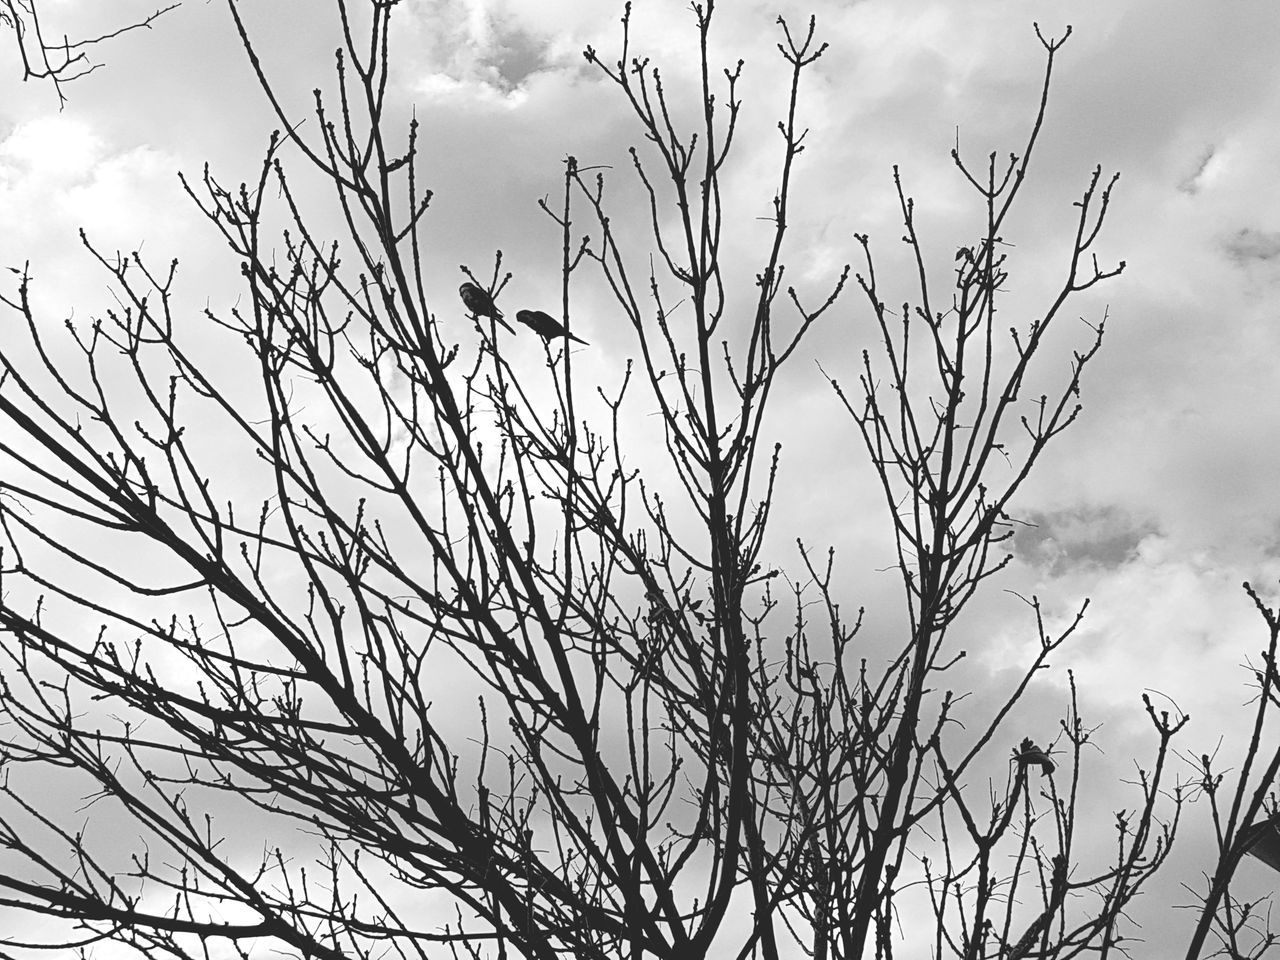 sky, cloud - sky, nature, low angle view, outdoors, no people, day, growth, bird, bare tree, beauty in nature, animal themes, animals in the wild, branch